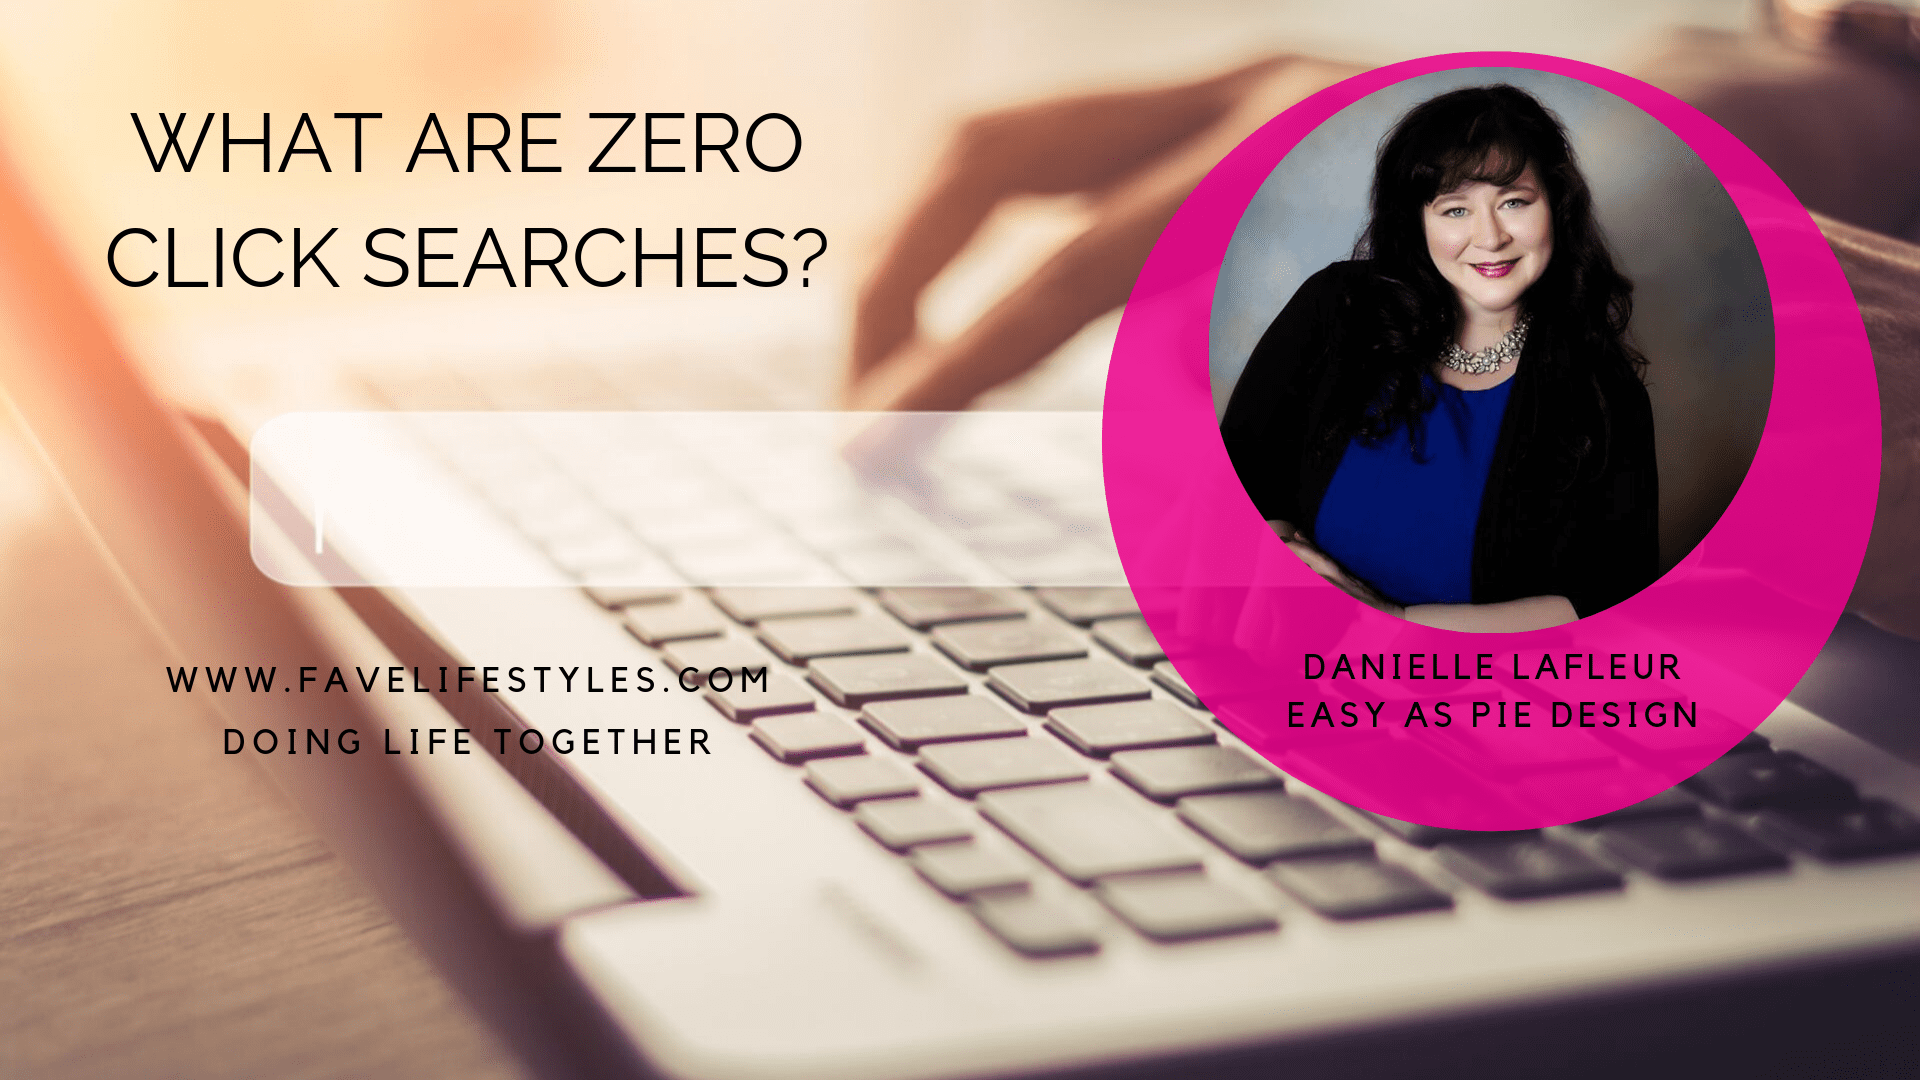 What Are Zero Click Searches?